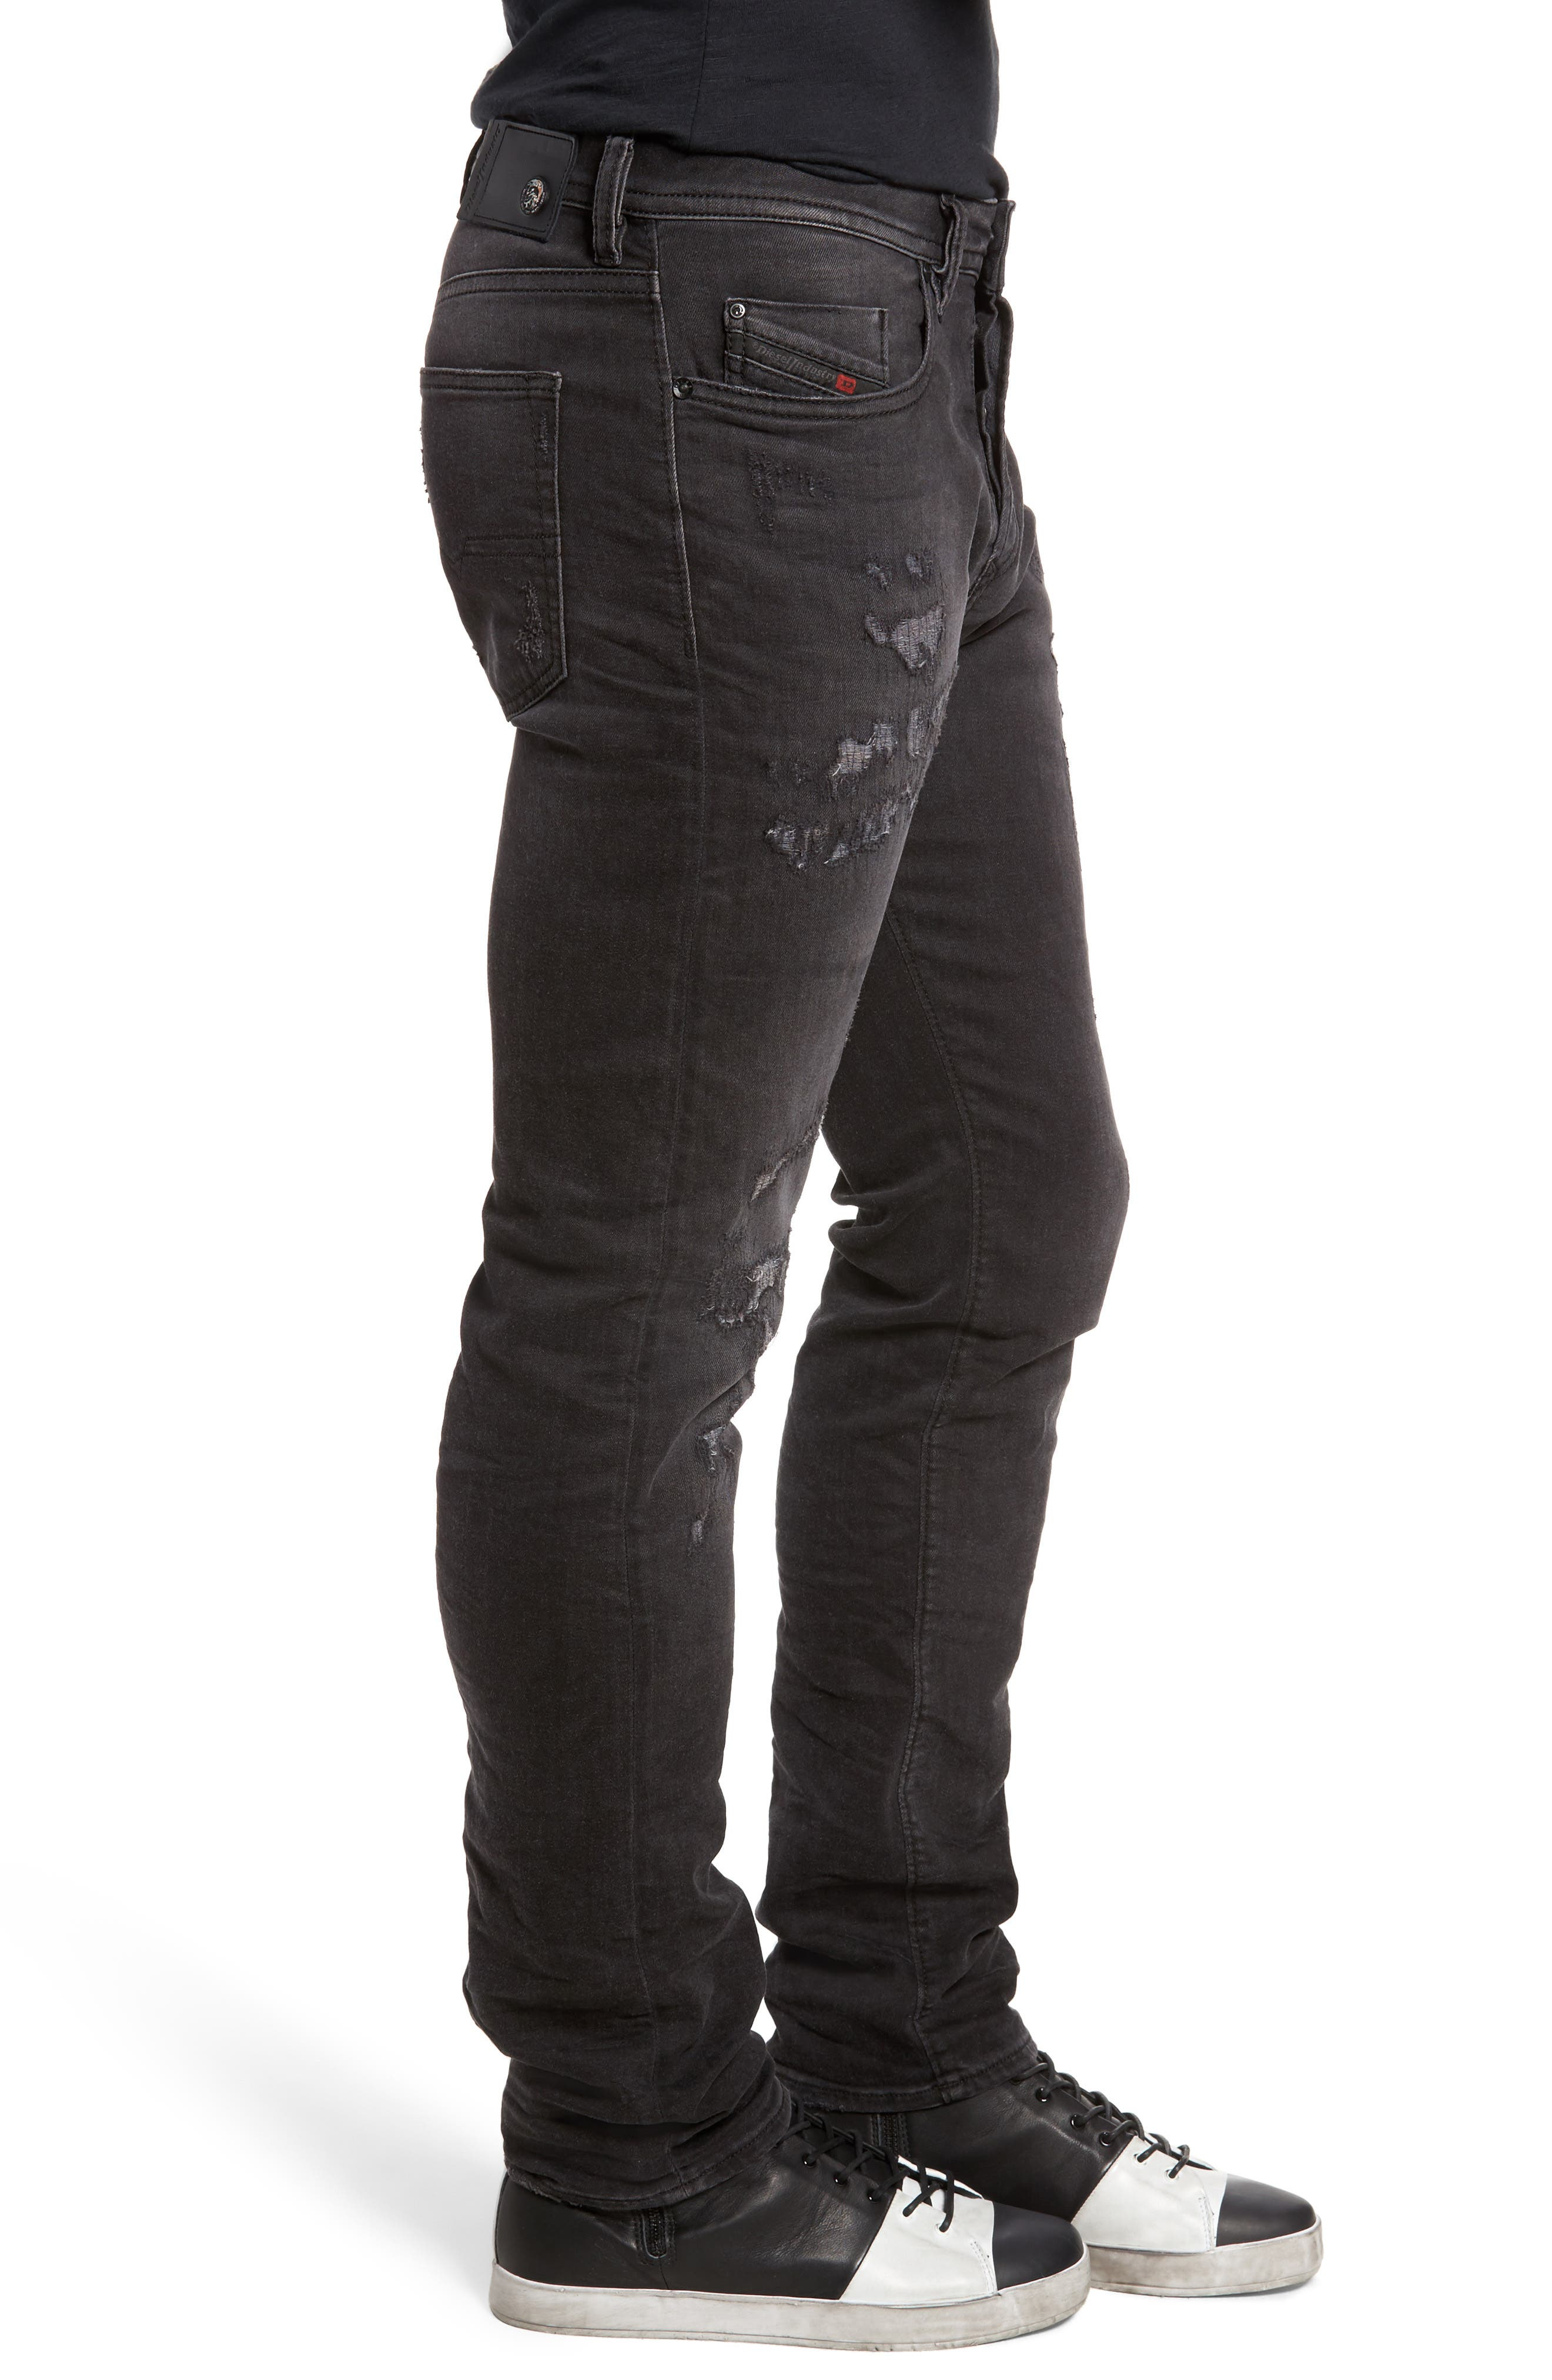 Buster Slim Straight Fit Jeans,                             Alternate thumbnail 3, color,                             008